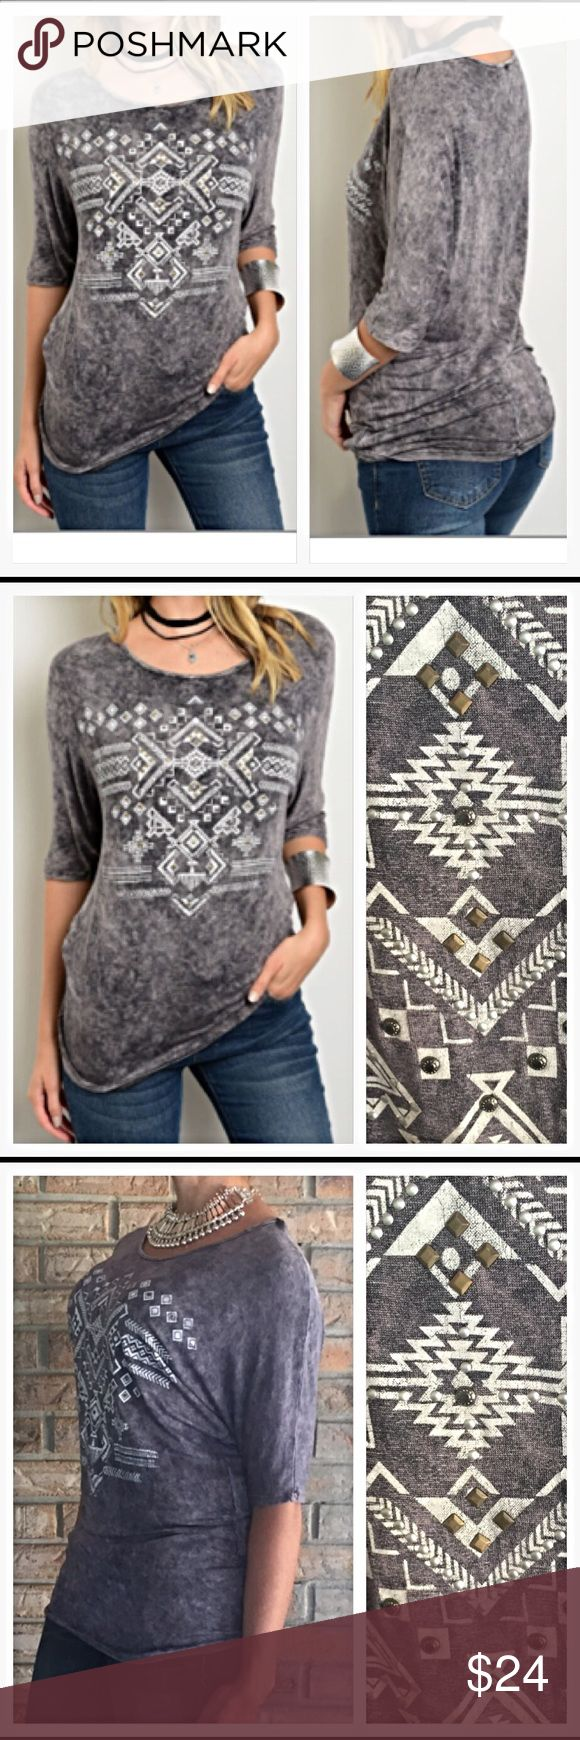 """Tie Dye Tribal Stud Soft Grey Tee S colors vary This gorgeous Charcoal Gray Tie Dye Studded Tribal Tee is a year round must. Wear alone or with a jacket or cardi. 95% rayon/5% spandex. TONS of stretch to fit perfectly. Each tee's color varies due to unique tie dye effect. gray/white tribal design/silver studs & 3/4 sleeves. New from manufacturer without tags   Small Chest laying flat 17.5"""" Length 23"""" Tops Tees - Short Sleeve"""